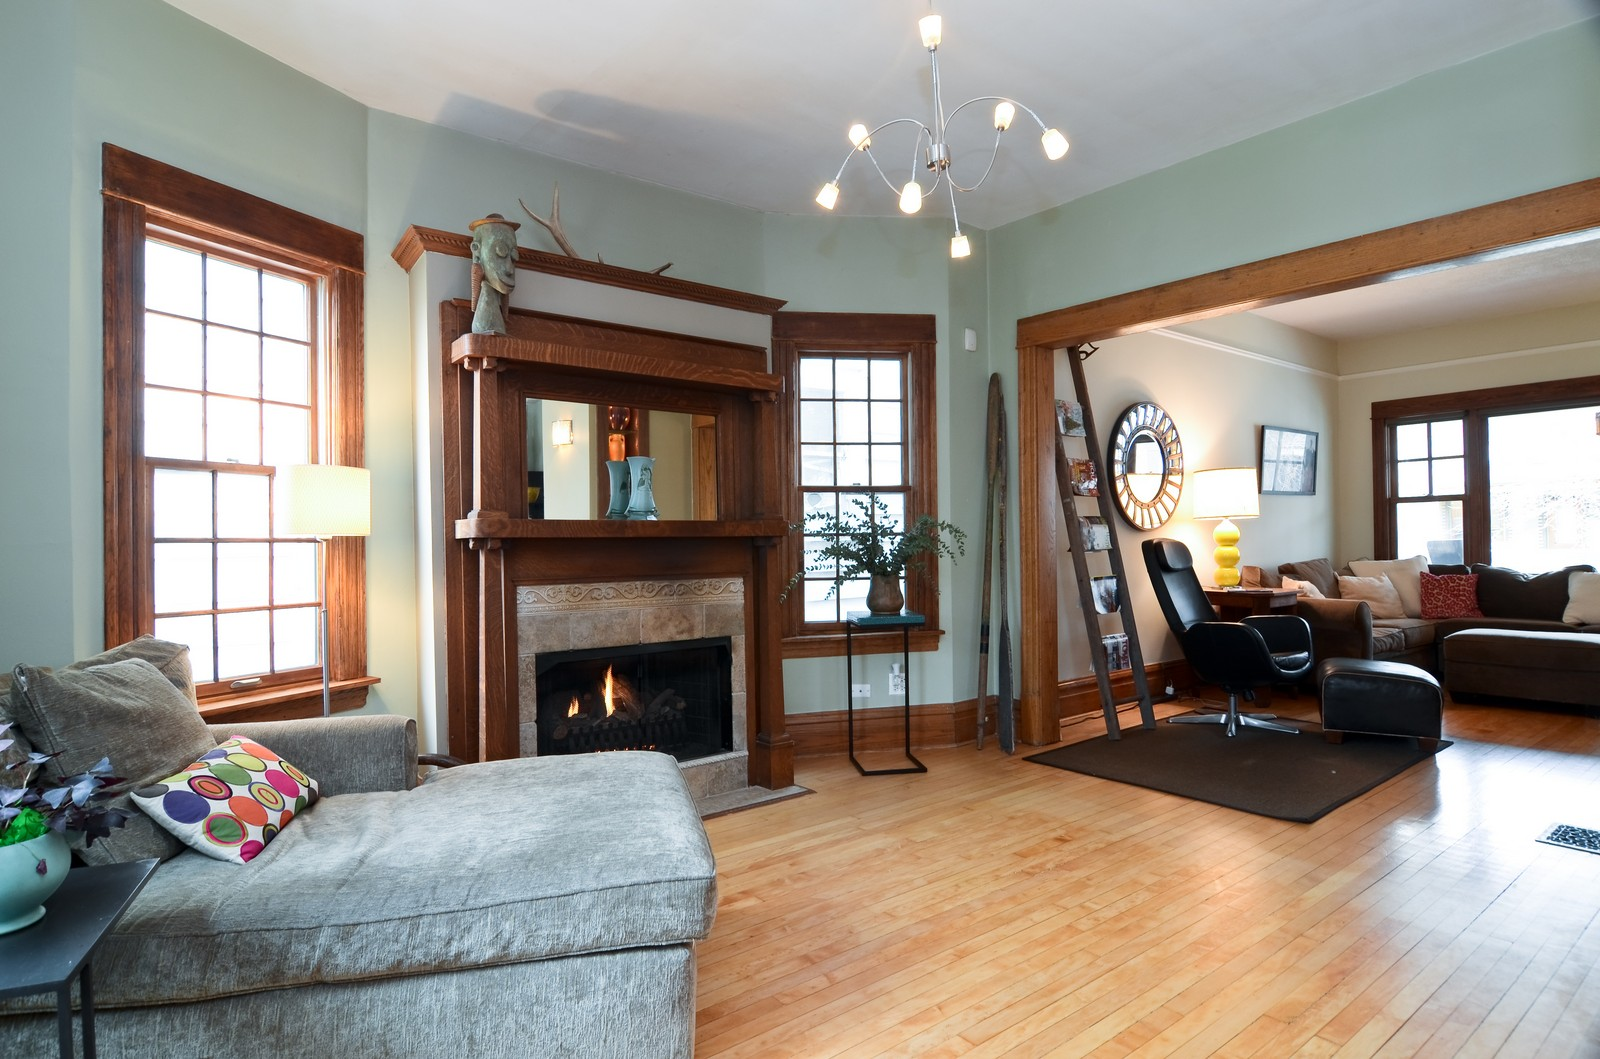 Real Estate Photography - 2519 N St. Louis, Chicago, IL, 60647 - Living Rm/Family Rm